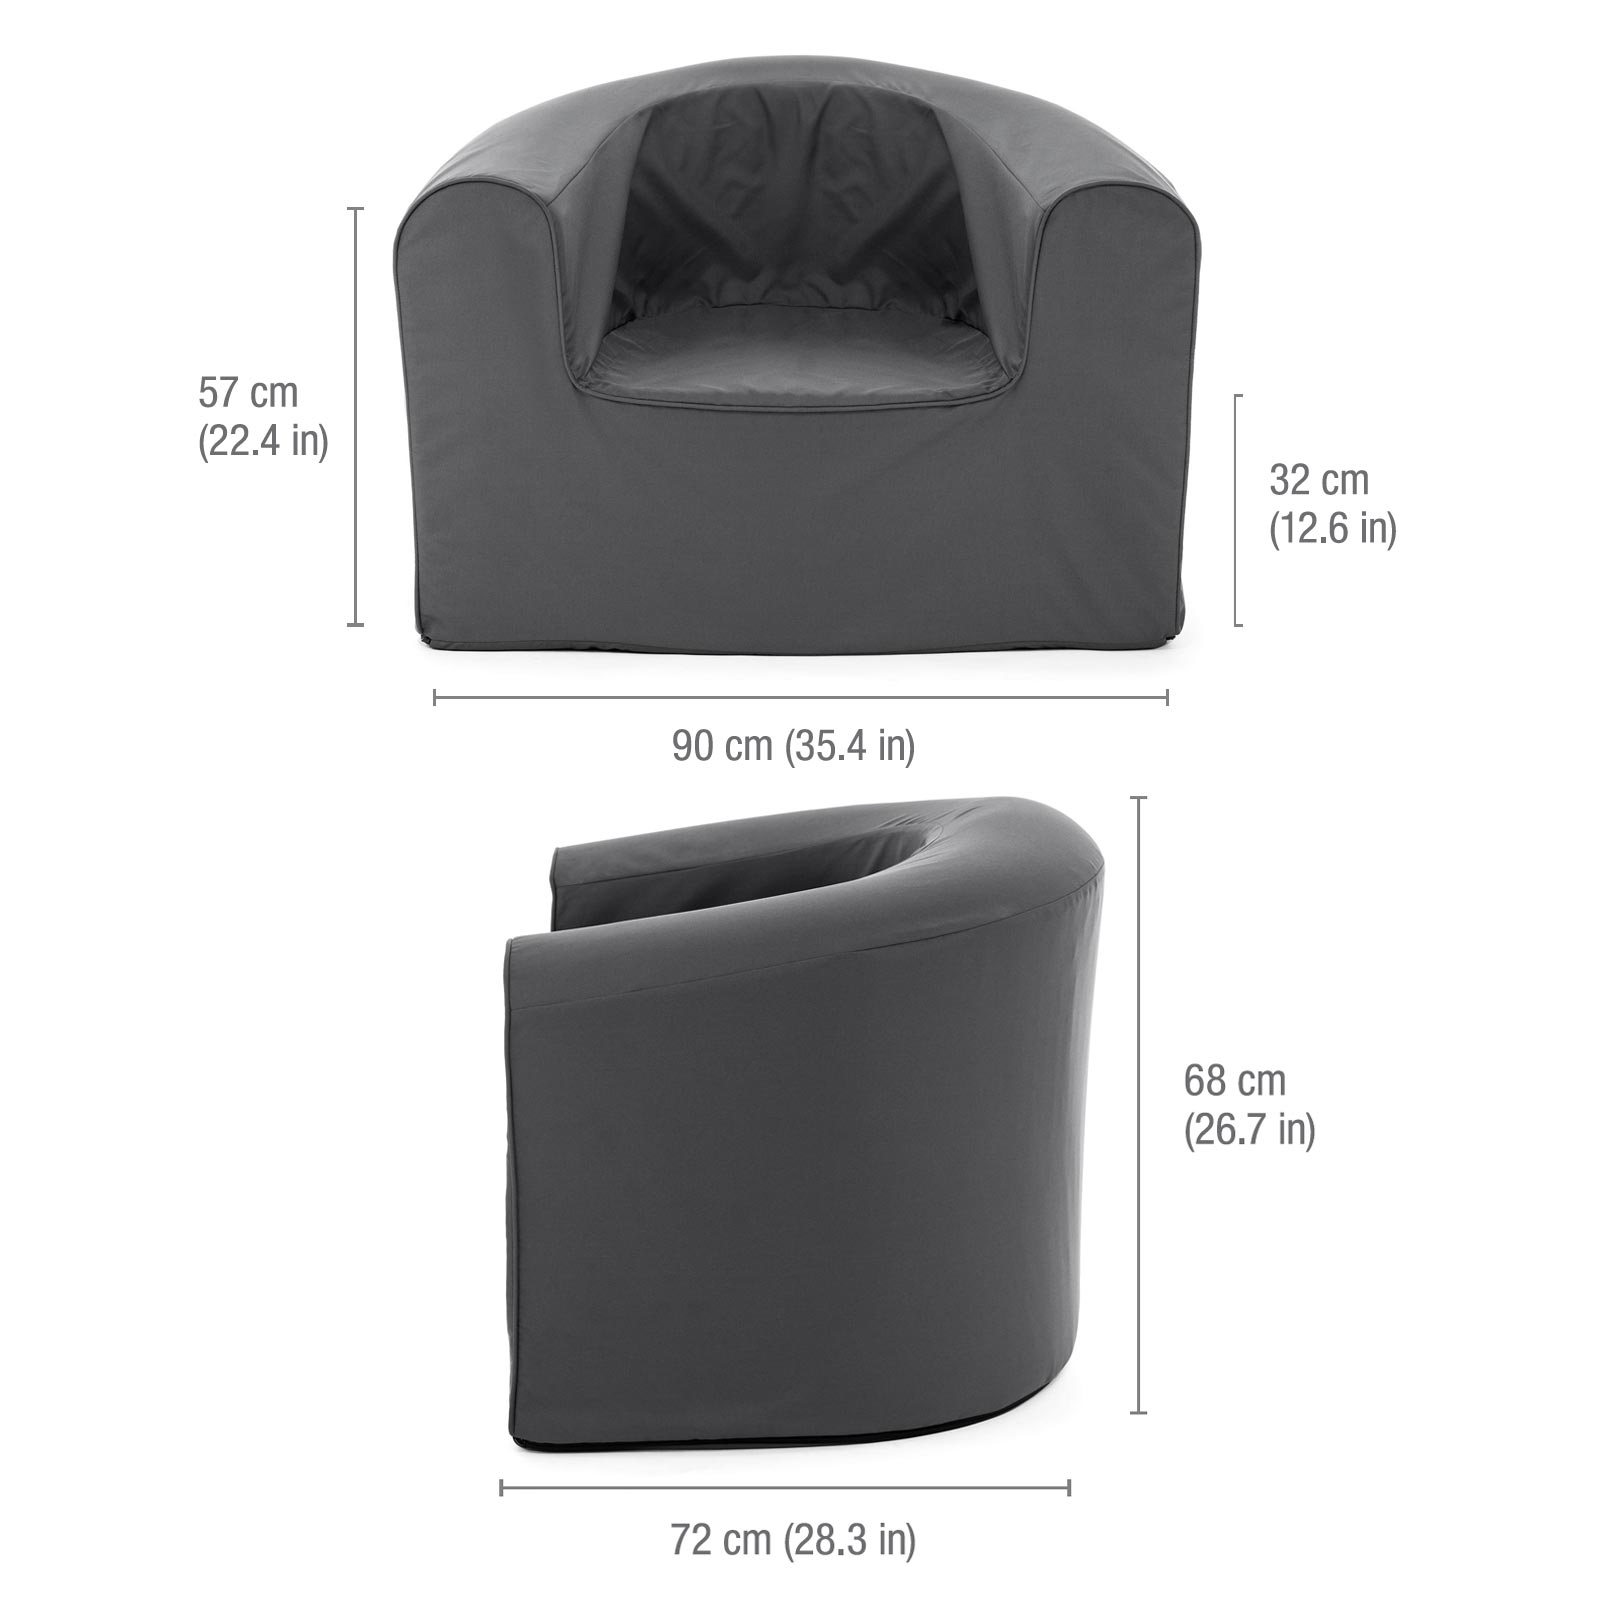 Image shows dimensions of the castle rock grey pop lounge foam armchair